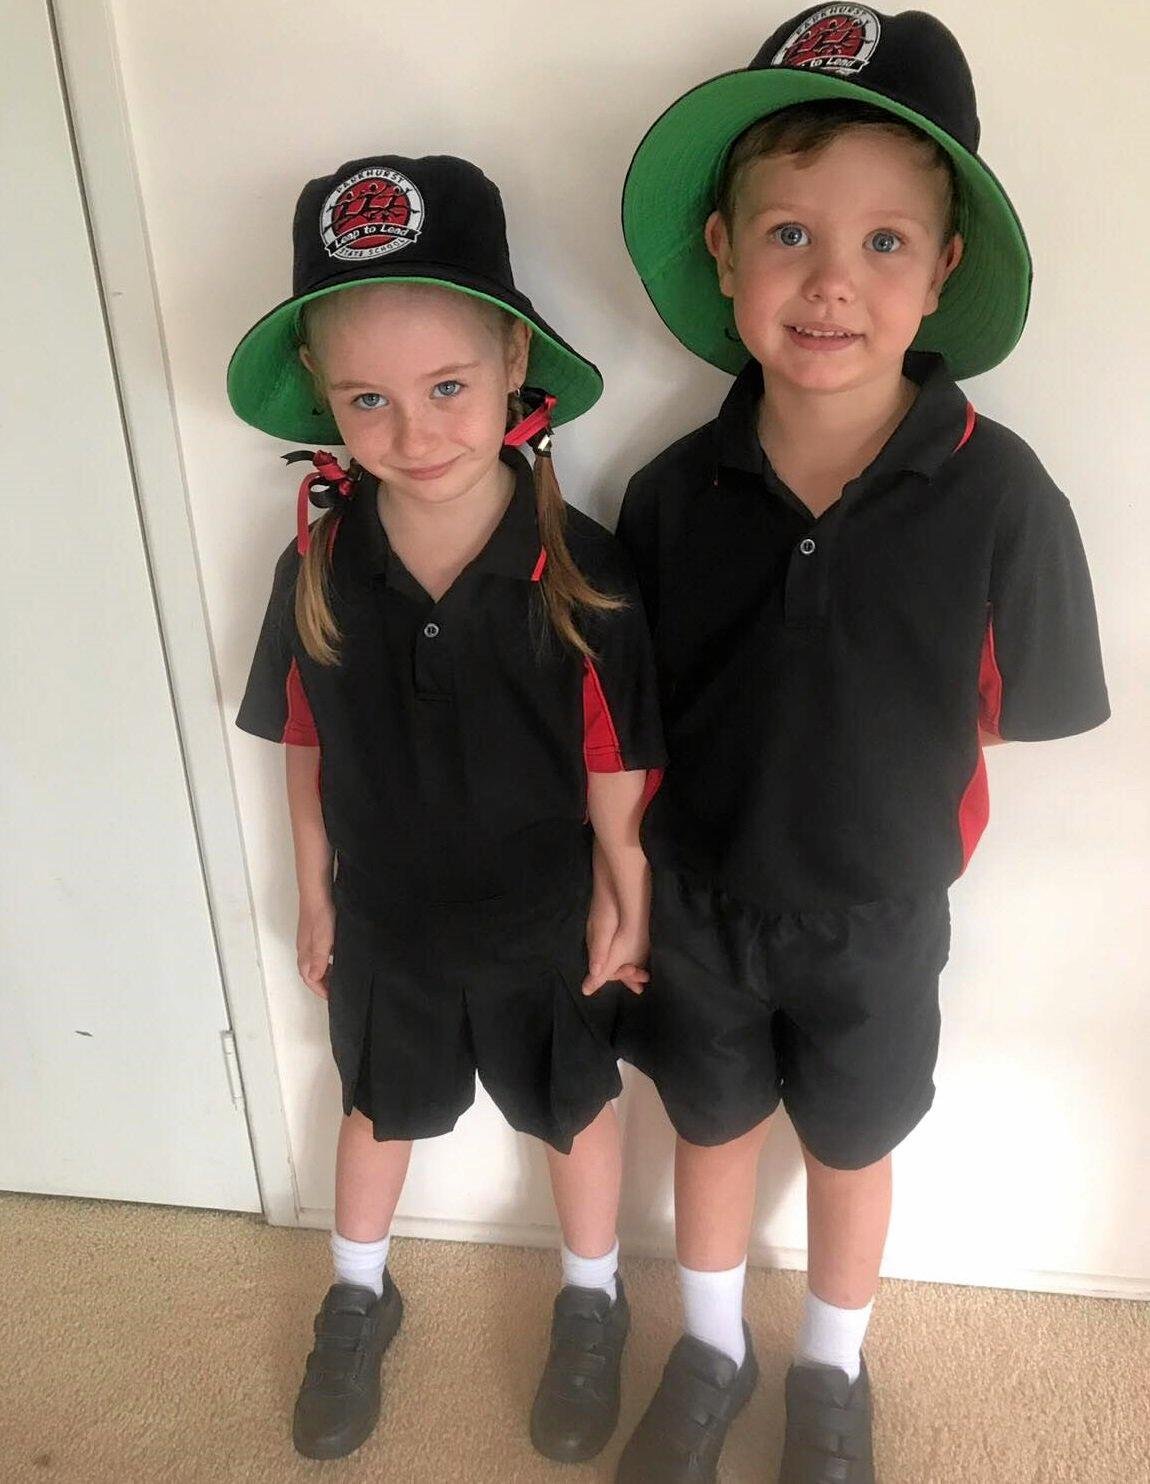 FIRST DAY: The twins, Sam and Sasha Anderson on their first day of prep at Parkhurst State School. The twins were born via a surrogacy pregnancy.